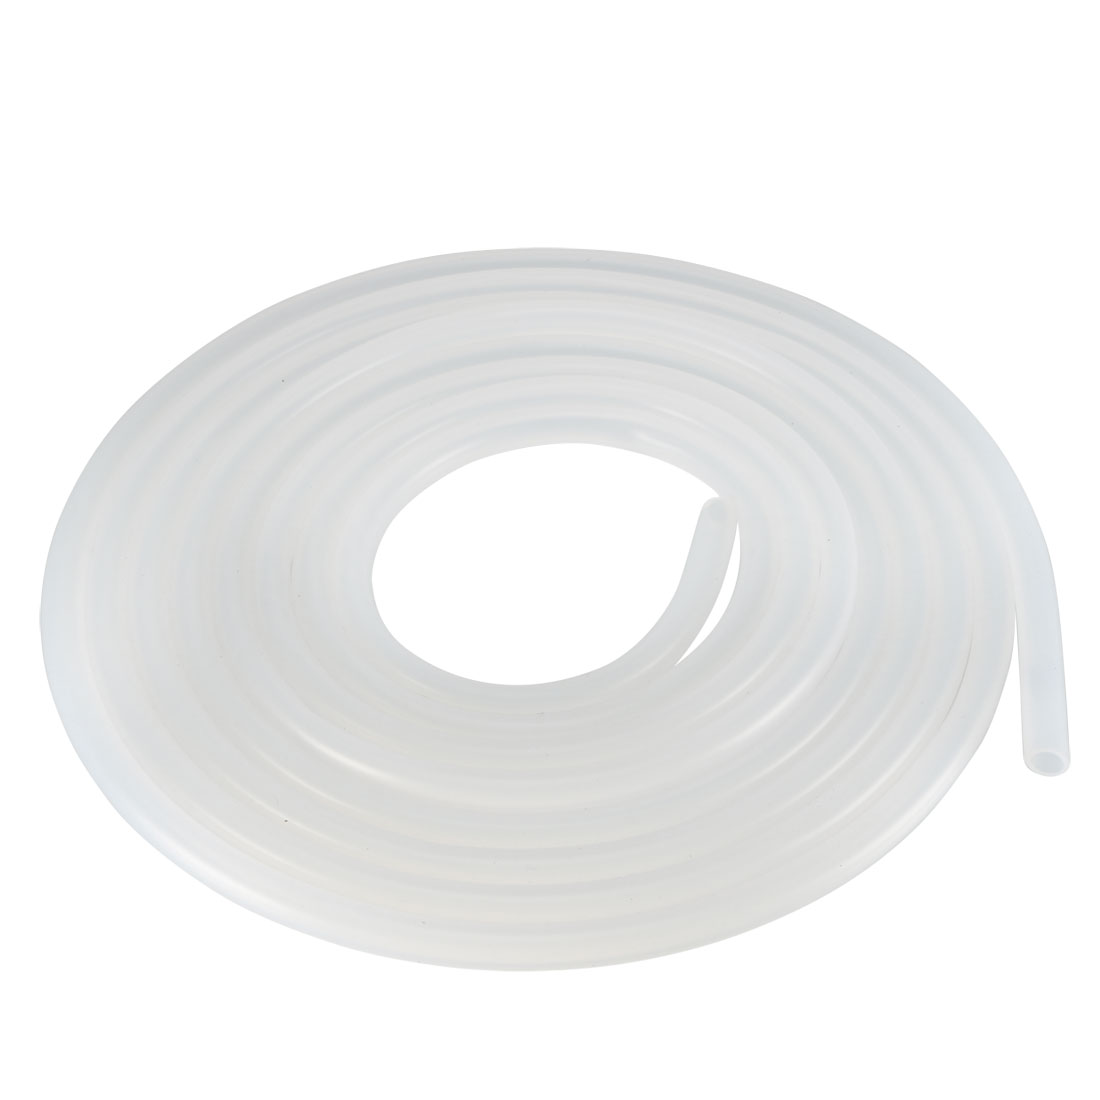 5mm x 7mm Silicone Vacuum Translucent Tube Beer Water Air Pump Hose Pipe 3 Meter Long